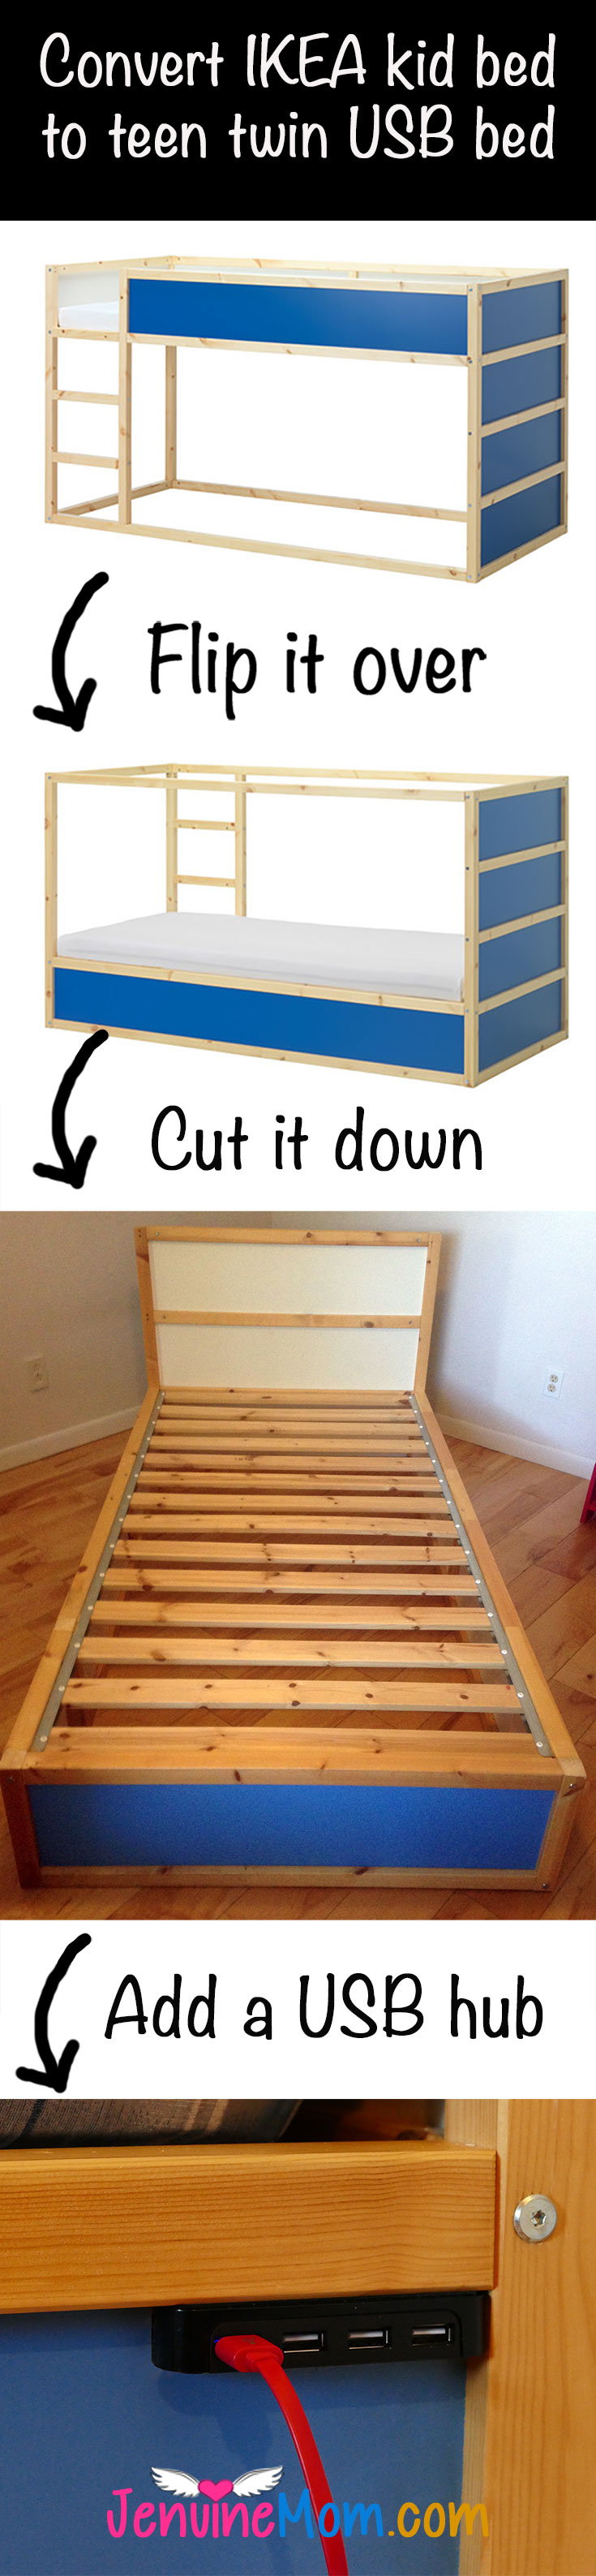 USB Bed Save Money By Hacking An IKEA KURA Bed Jennifer Maker - Does ikea have flooring